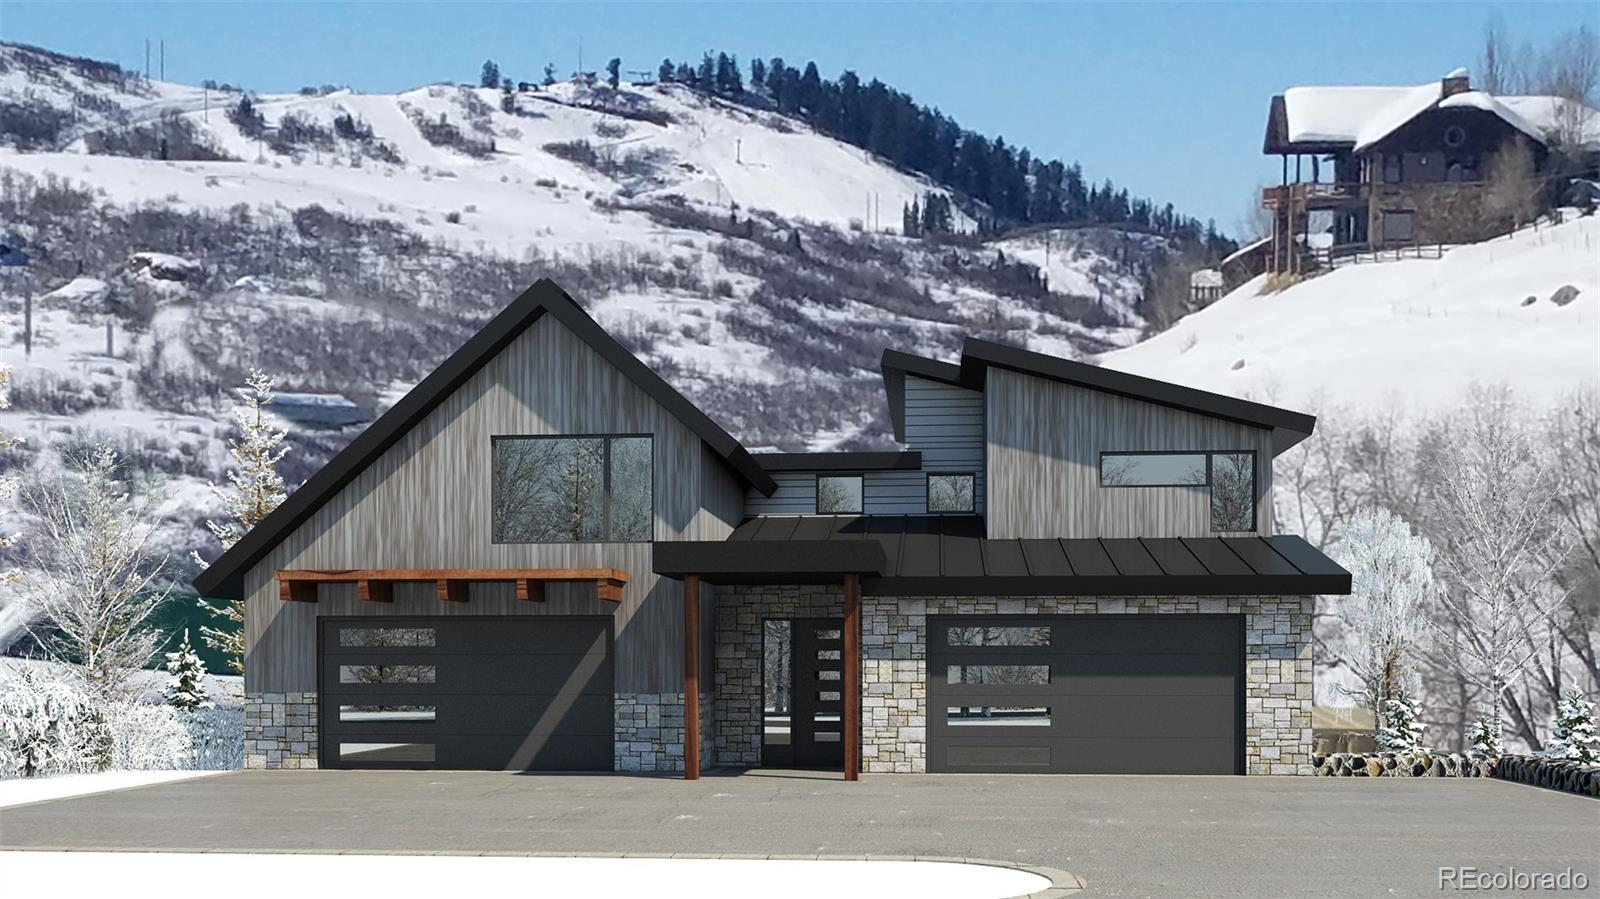 MLS# 8166370 - 2 - 843 Mill Run Court, Steamboat Springs, CO 80487